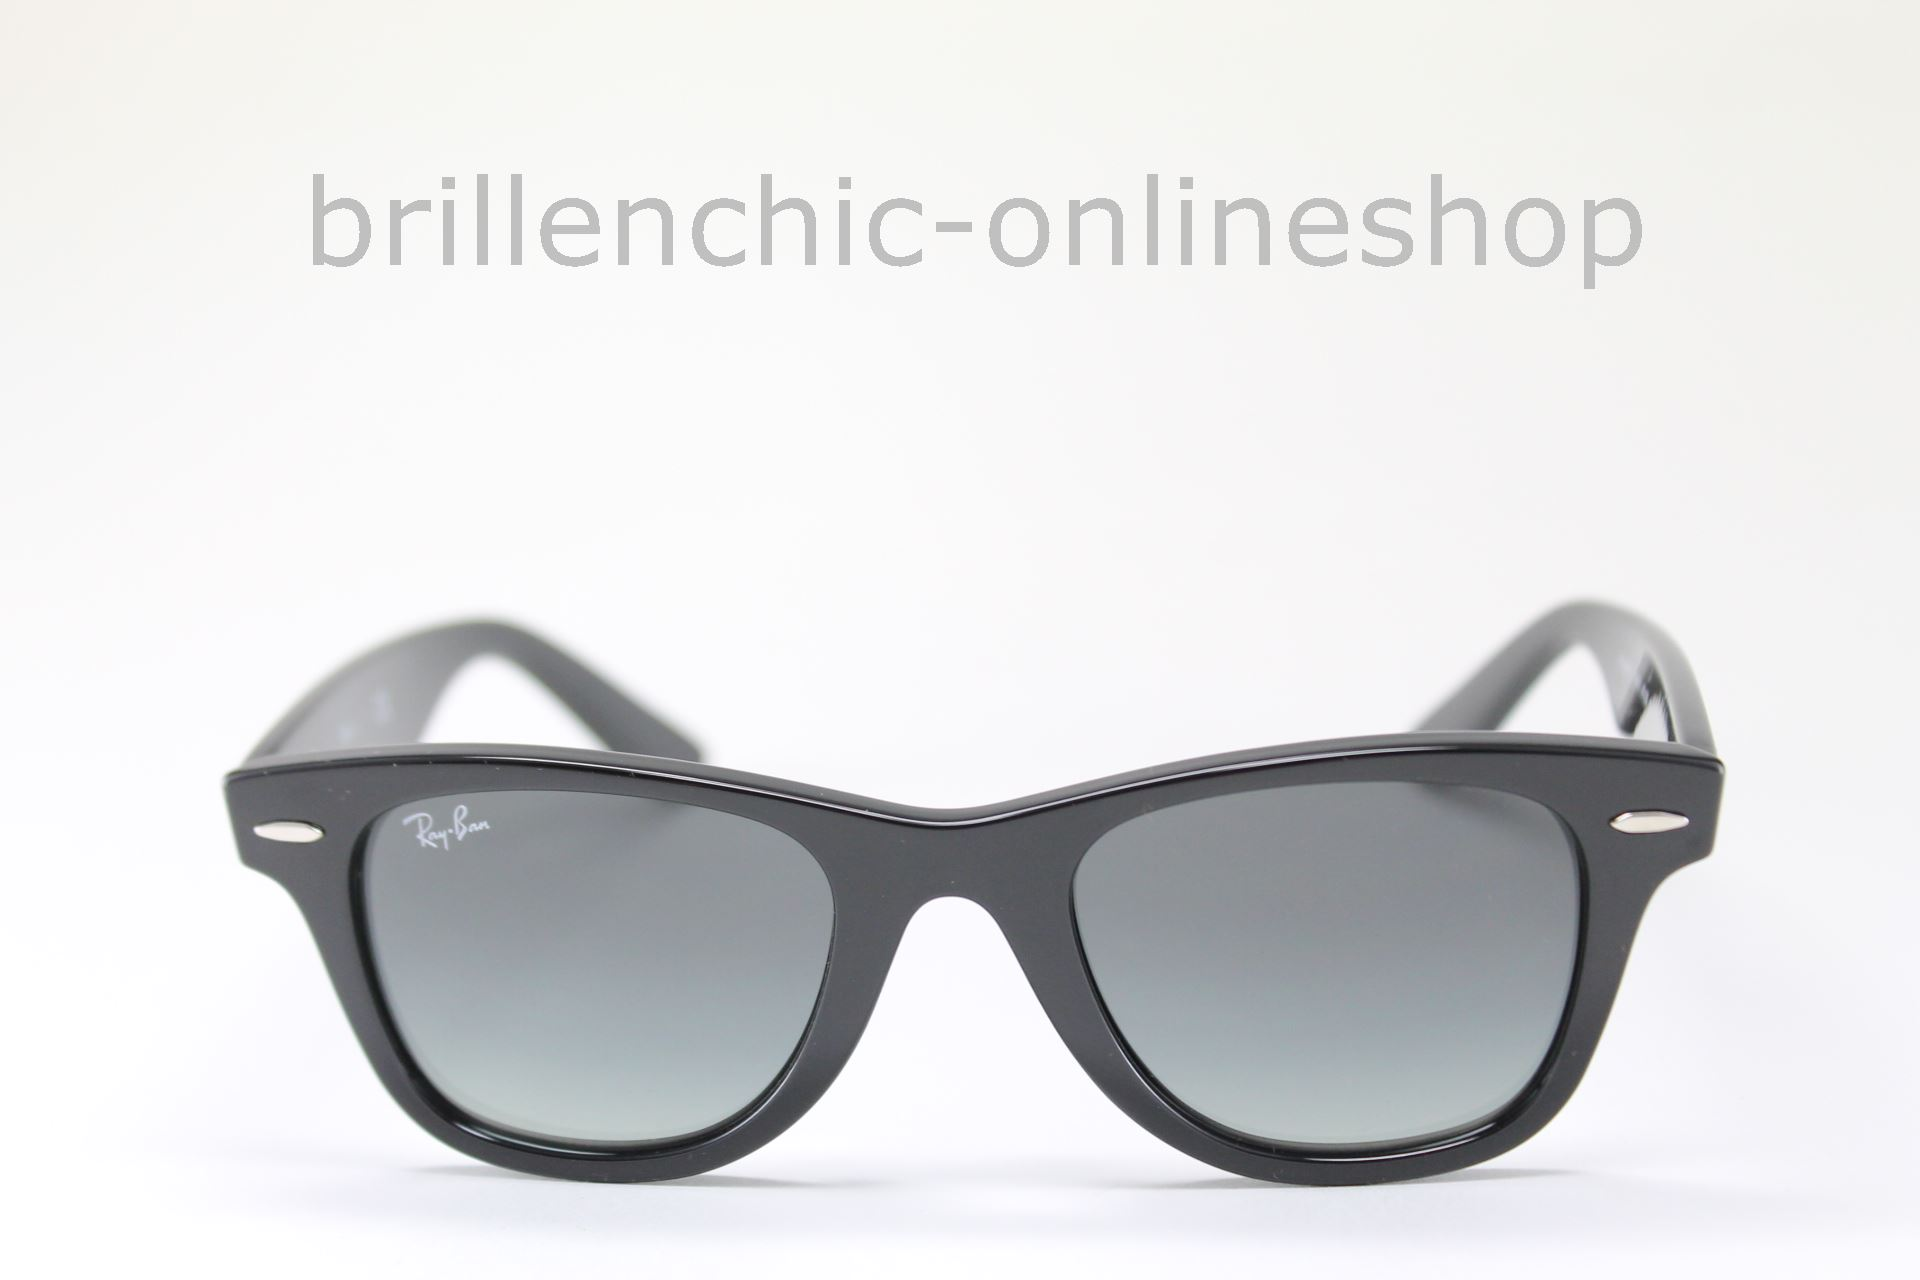 f7ea34251 Brillenchic-onlineshop in Berlin - Ray Ban JUNIOR RJ 9066S 9066 100 ...